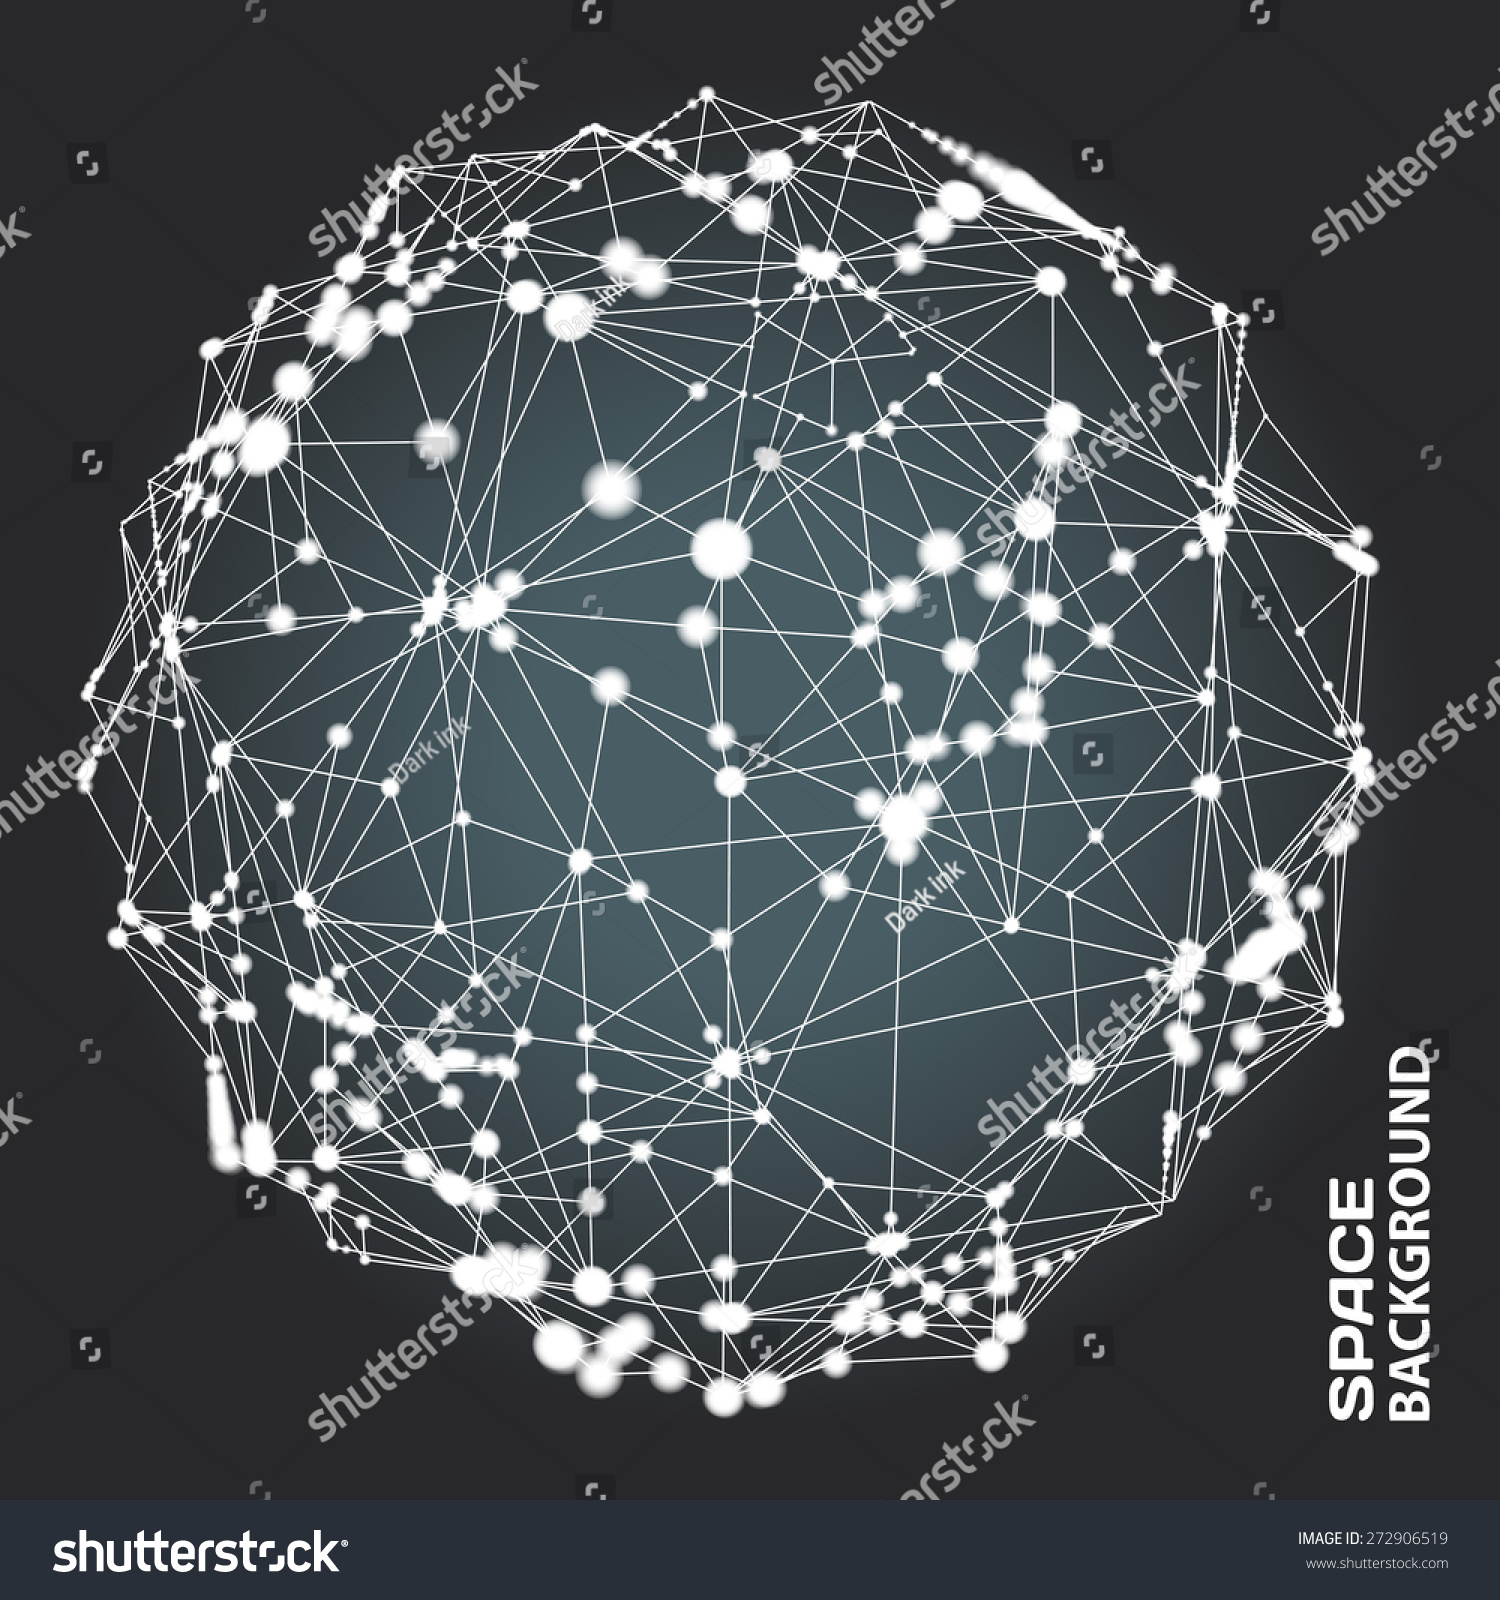 collection d wireframe vector images black and white pictures abstract black and white background dots and lines on theme abstract black and white background dots and lines on theme